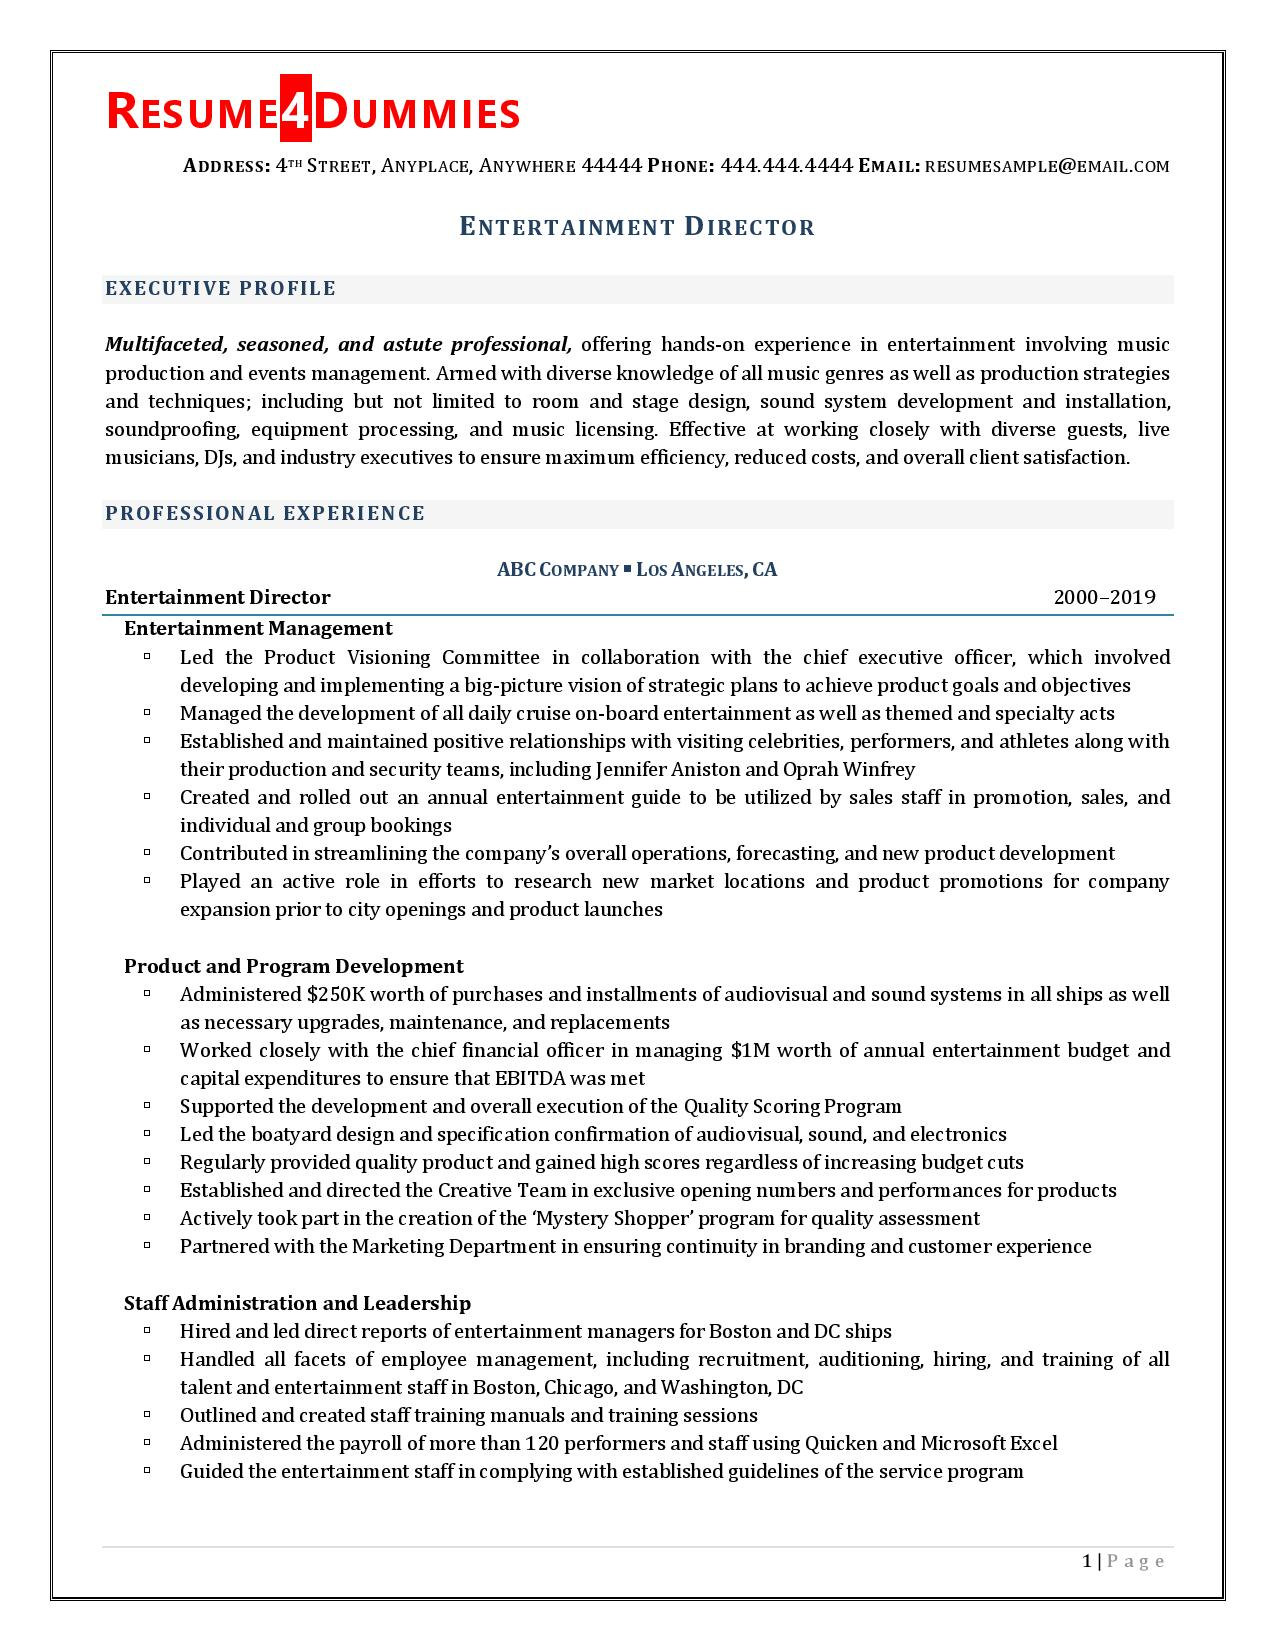 Page 1 of entertainment director resume examples